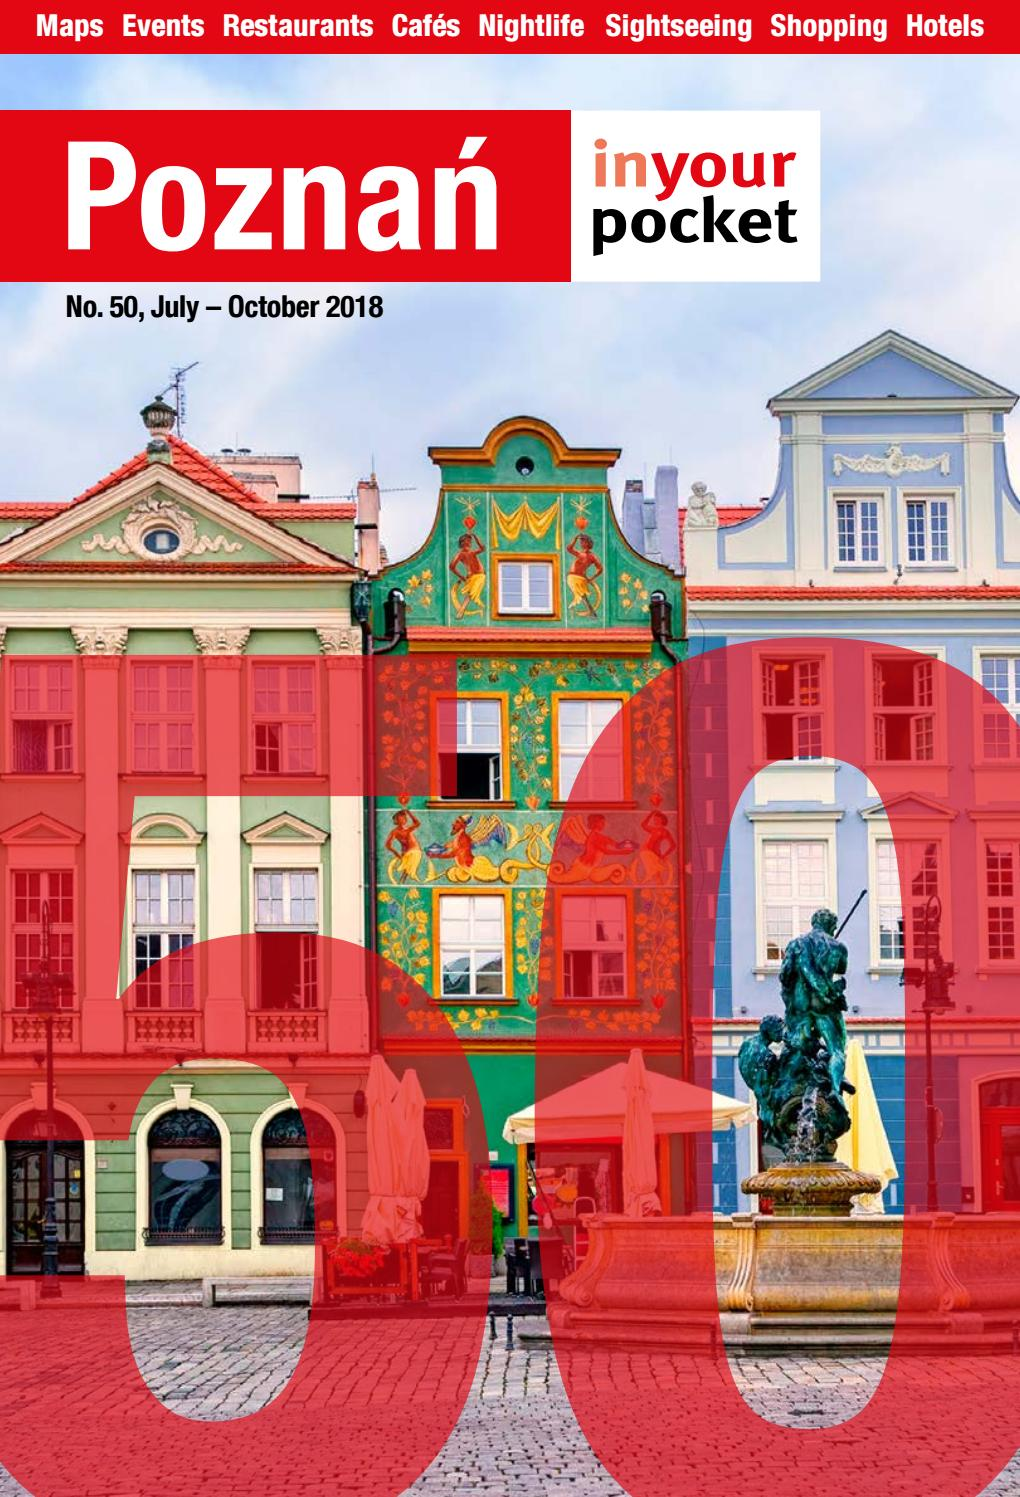 9f978b0822f9 Poznan In Your Pocket by In Your Pocket - issuu